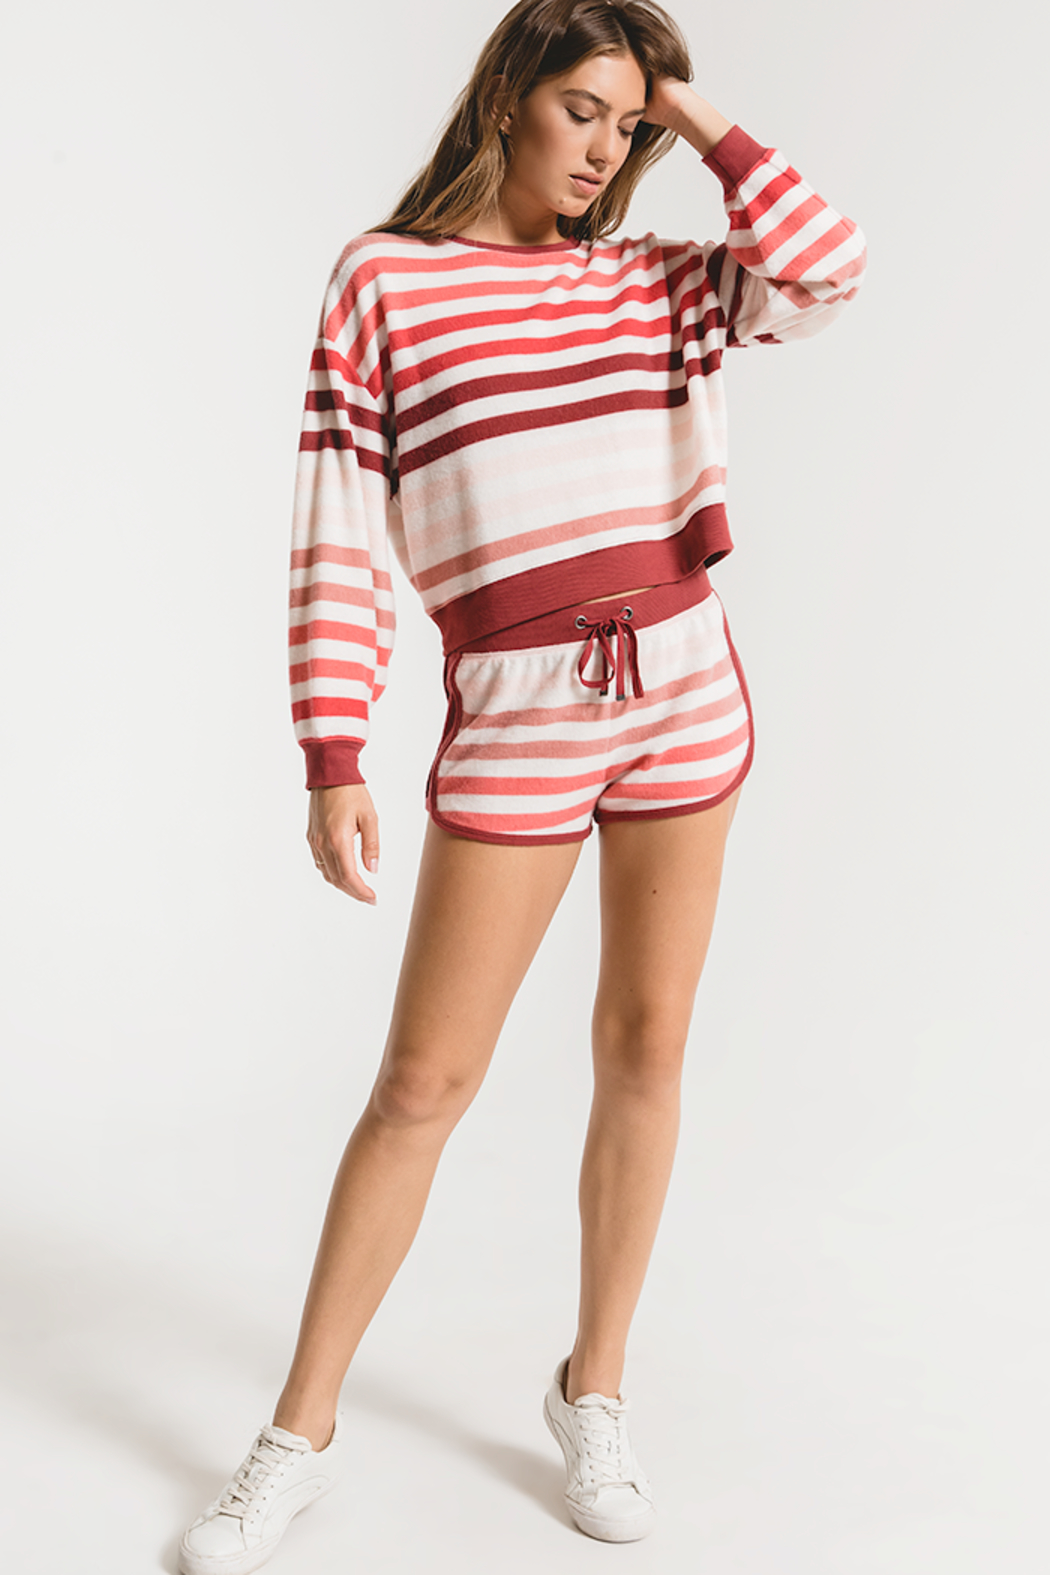 z supply Rainbow Stripe Pullover - Back Cropped Image